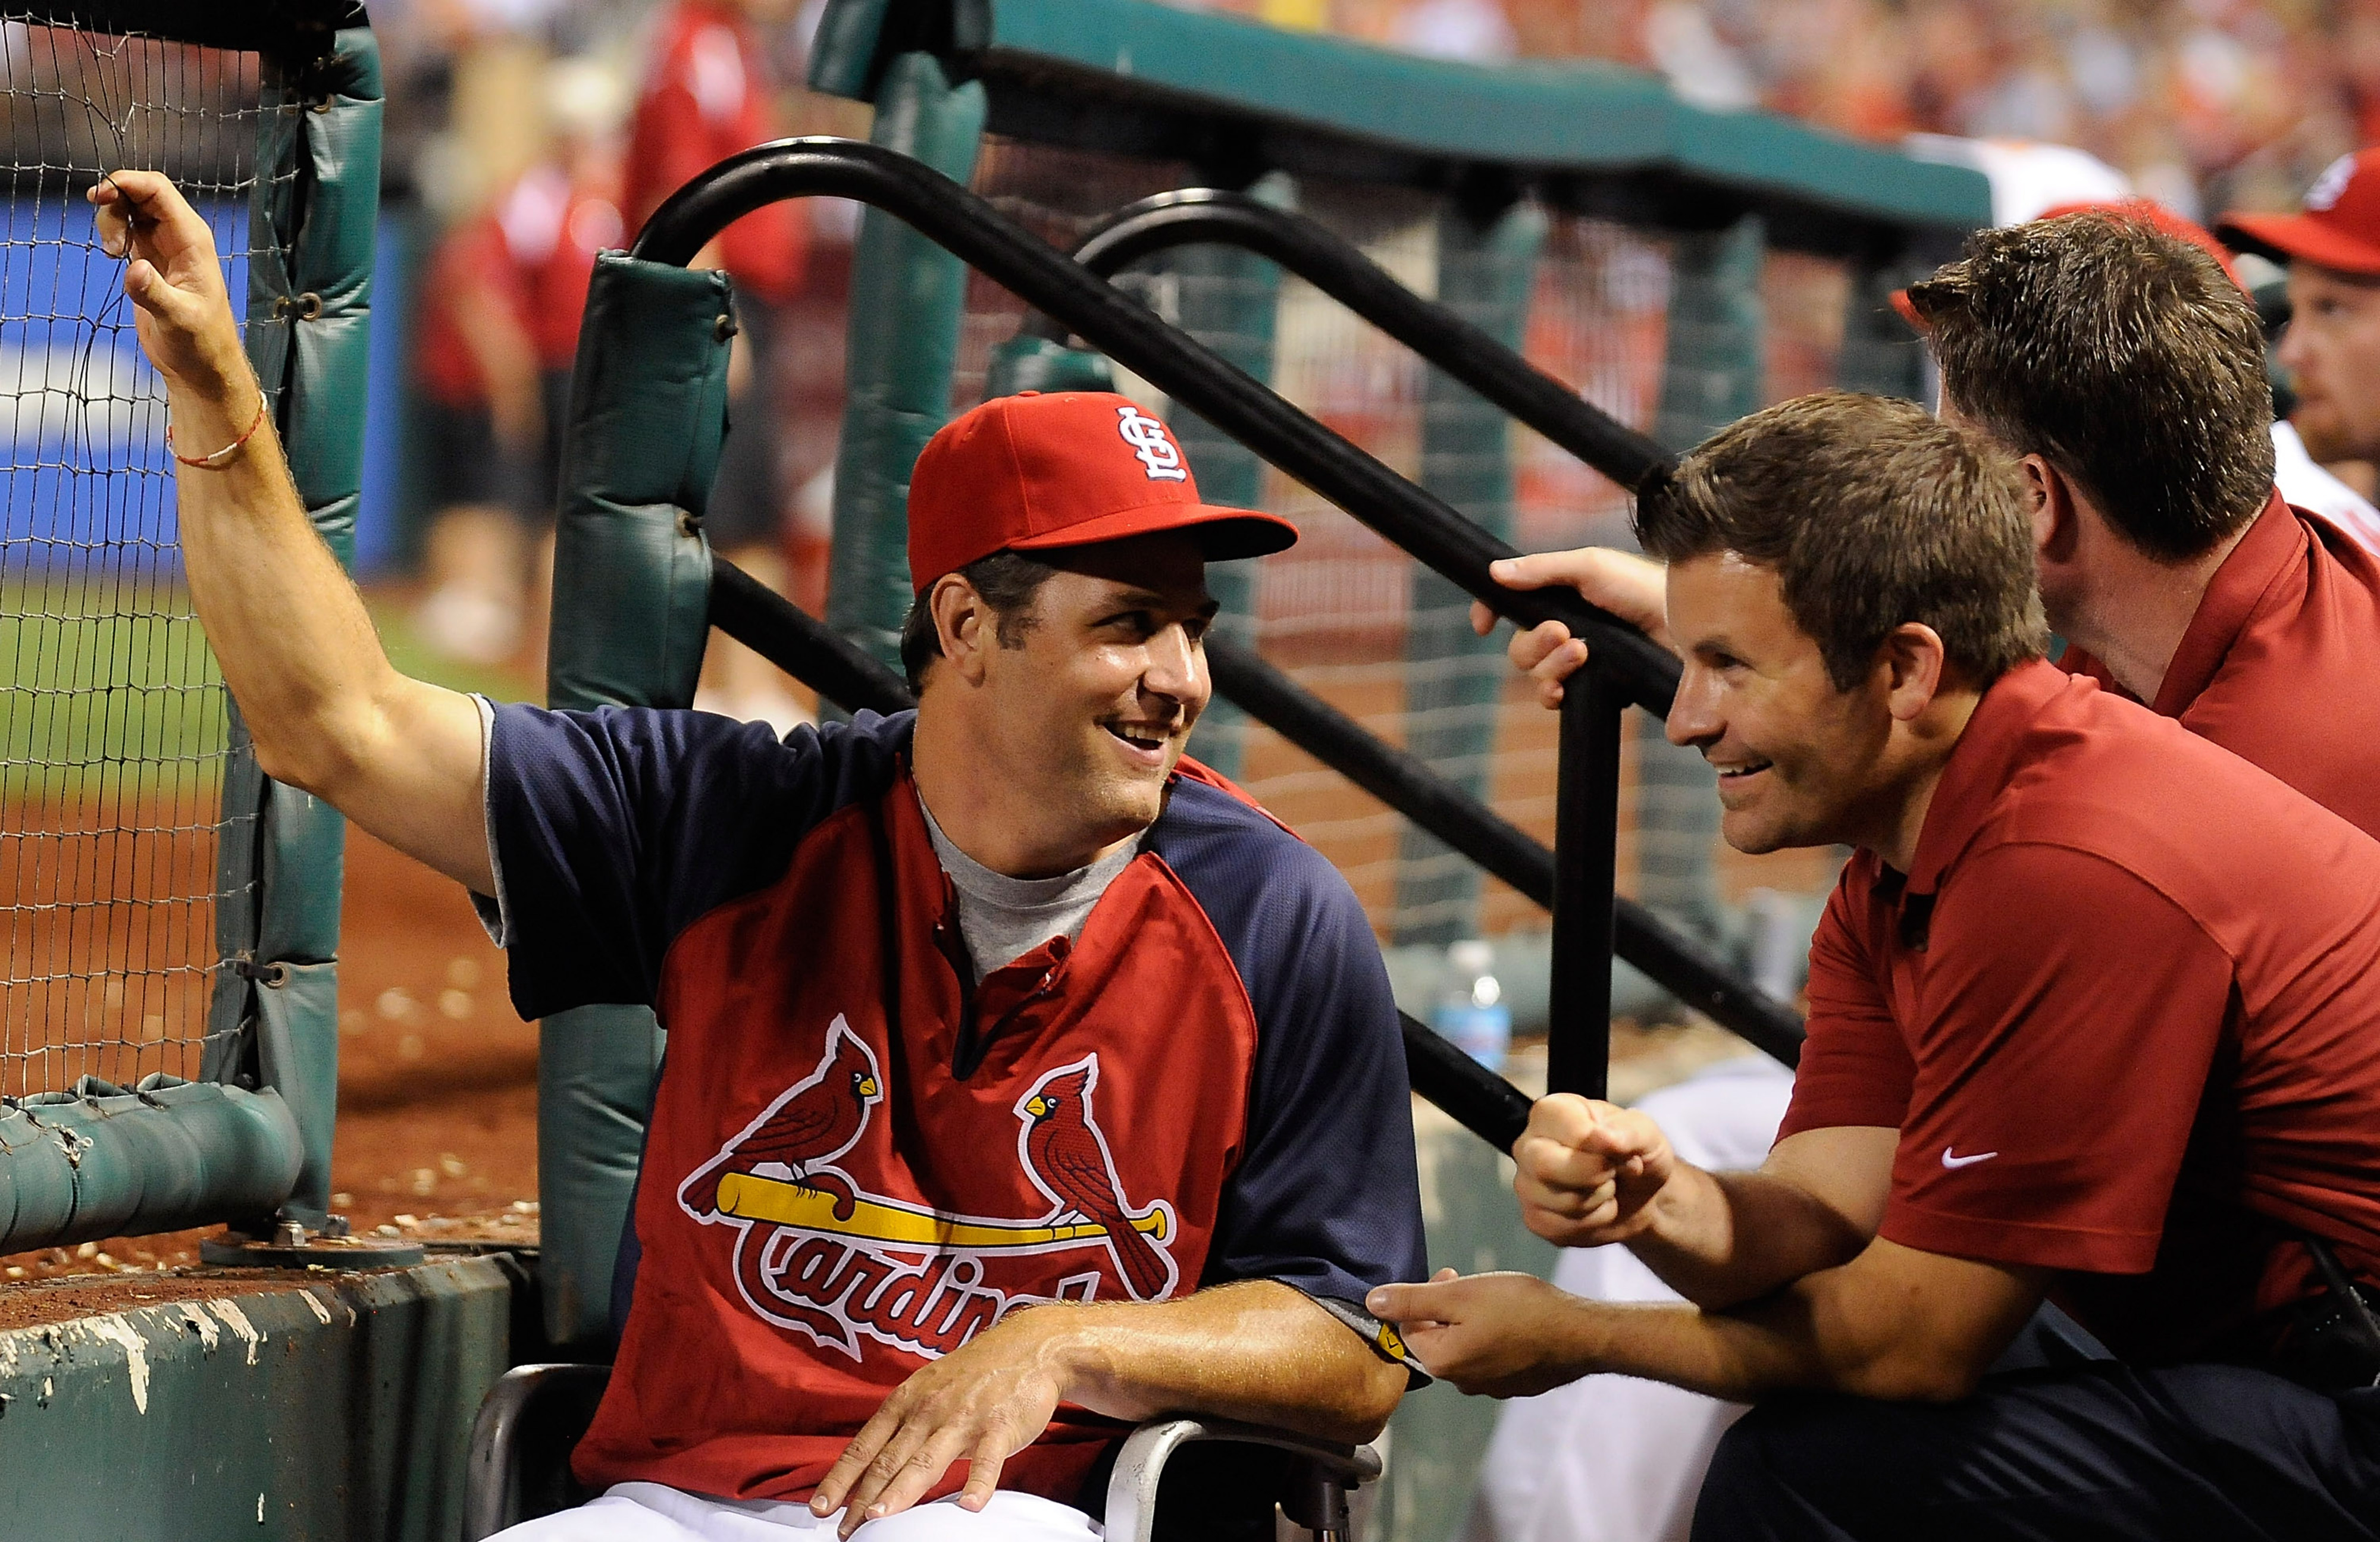 ST. LOUIS, MO - AUGUST 3: Lance Berkman #12 of the St. Louis Cardinals talks with trainers during a game against the Milwaukee Brewers at Busch Stadium on August 3, 2012 in St. Louis, Missouri. (Photo by Jeff Curry/Getty Images)